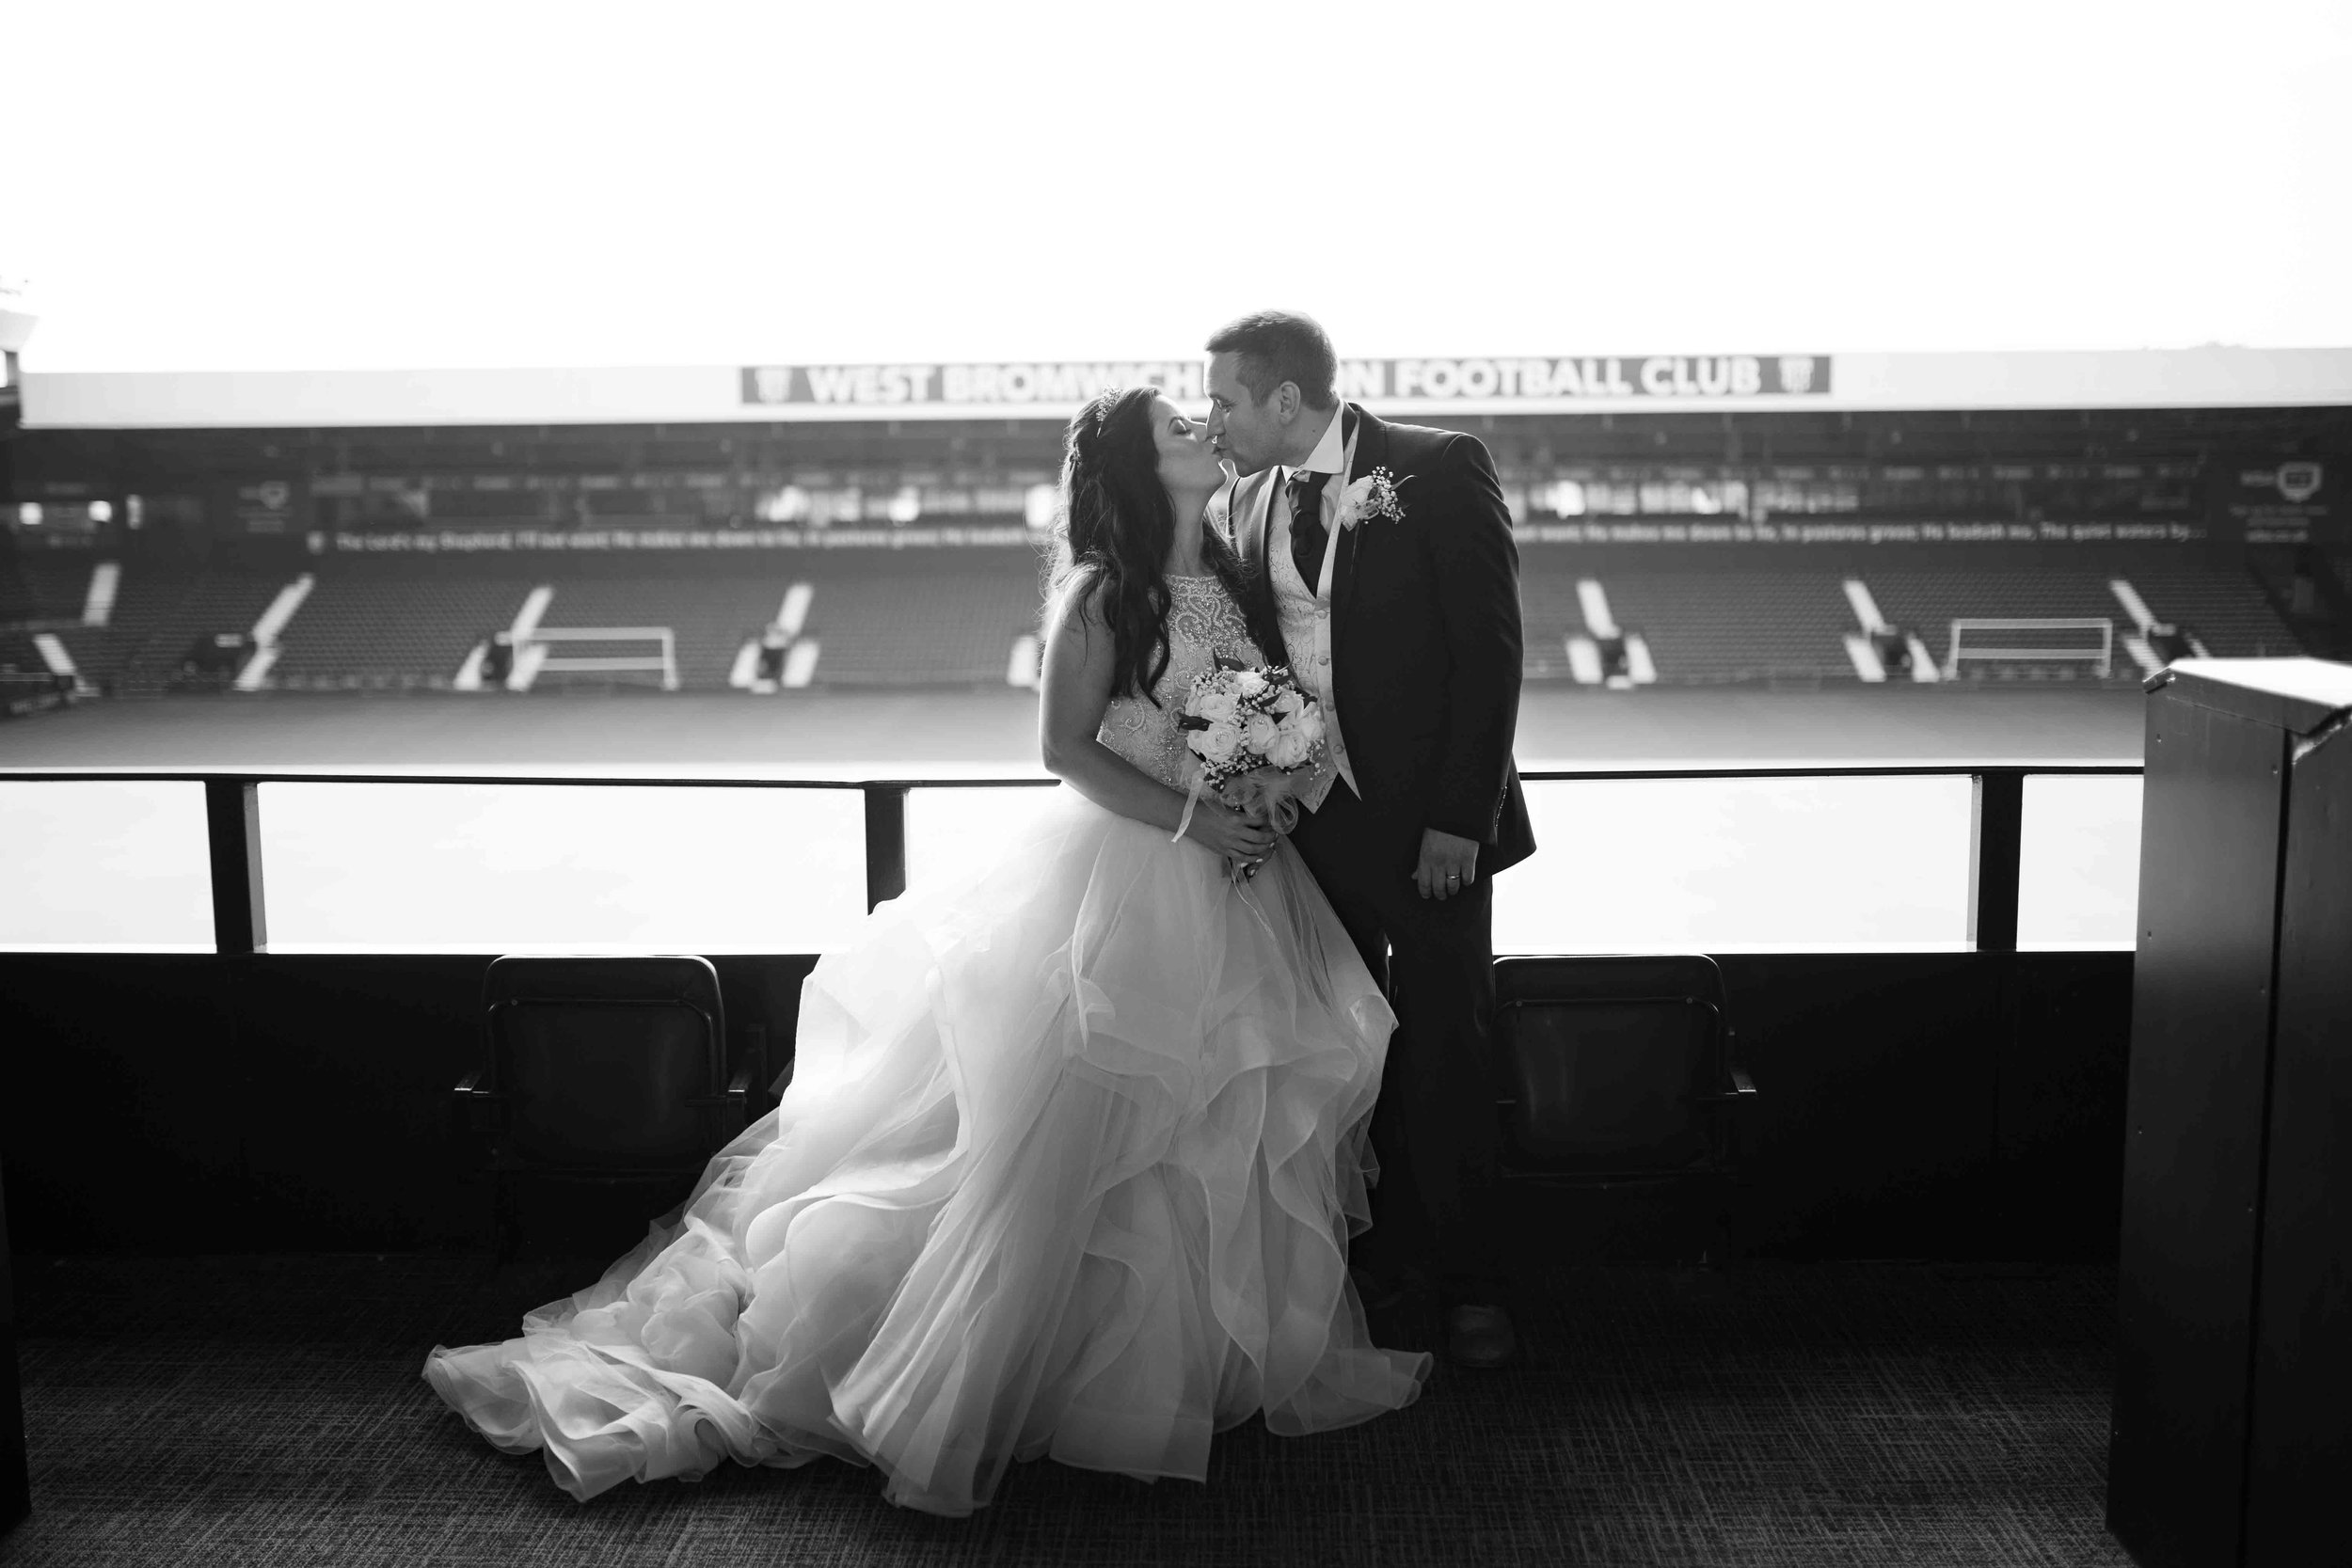 Lea-cooper-photography-wedding-photography-dudley-priory-west-bromwich-albion-football-club-wedding-WBAFC-willenhall-wolverhampton-west-midlands-uk-22.JPG